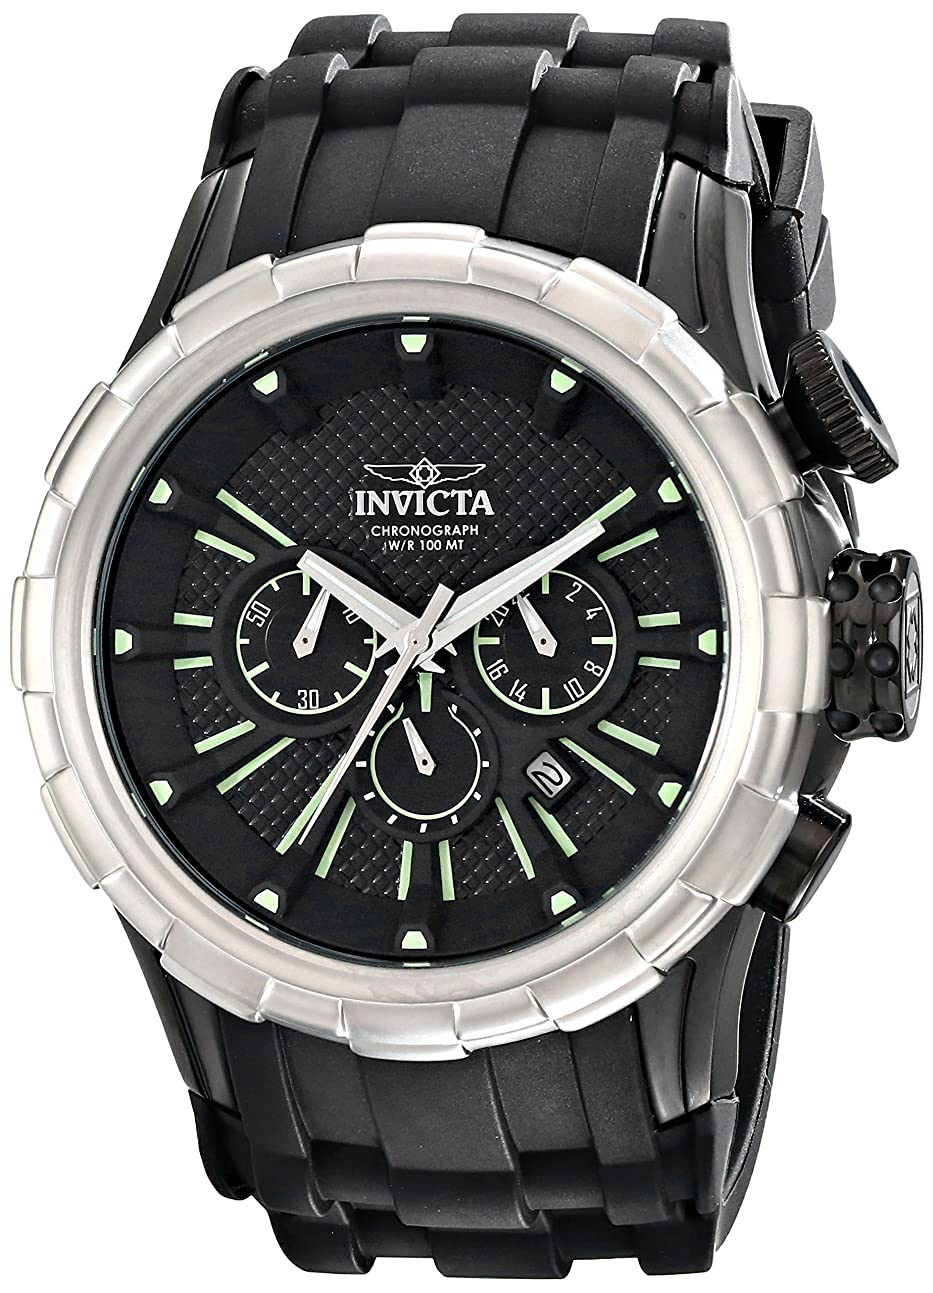 Invicta I-Force Analog Black Dial Men's Watch - 16975 Men at amazon